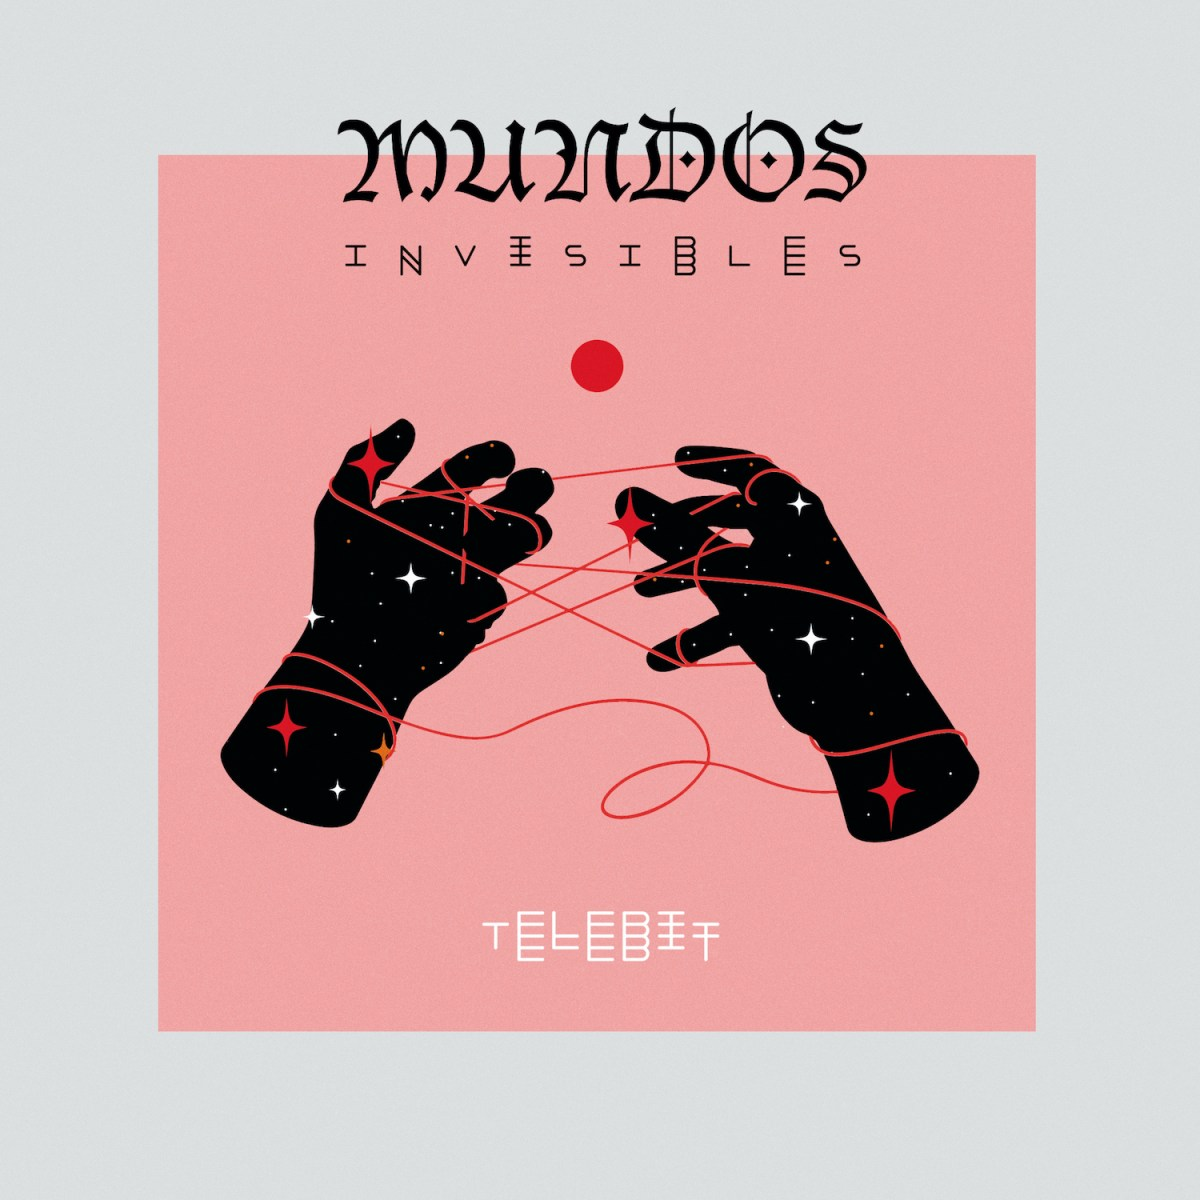 TELEBIT estrena 'Mundos Invisibles' y su video oficial.